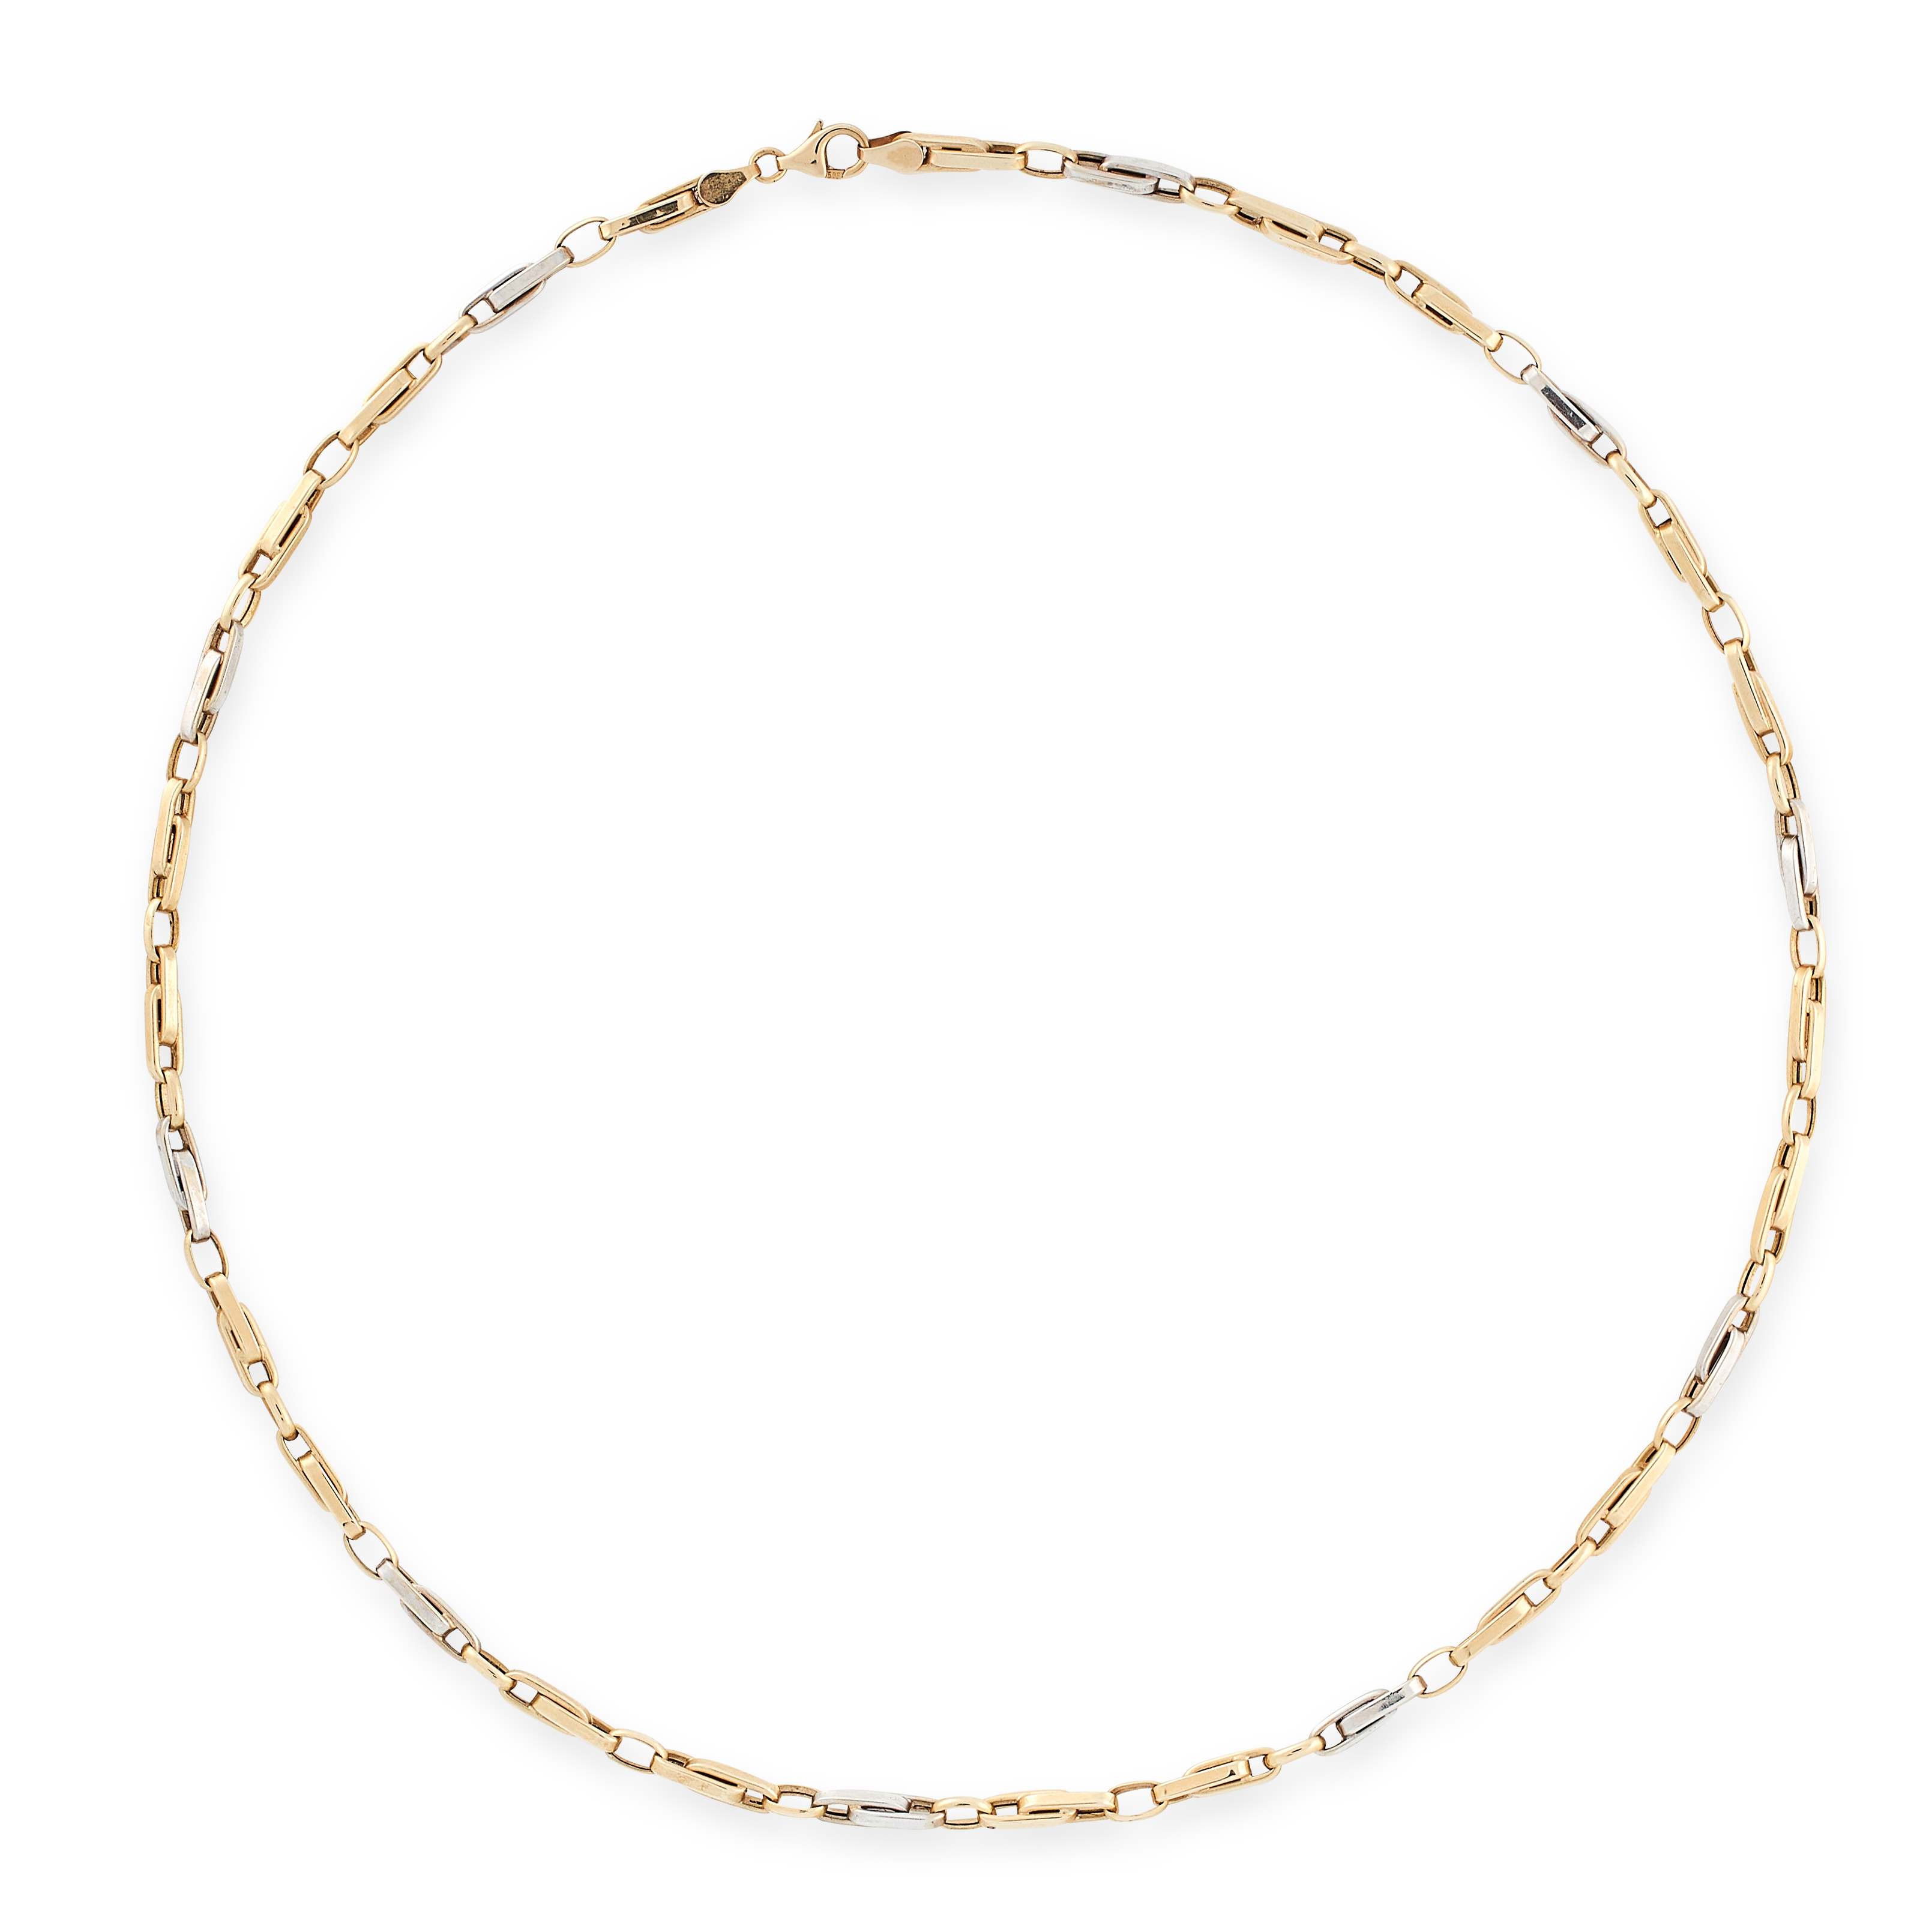 A FANCY LINK CHAIN NECKLACE in 14ct yellow gold and white gold, formed of alternating white and